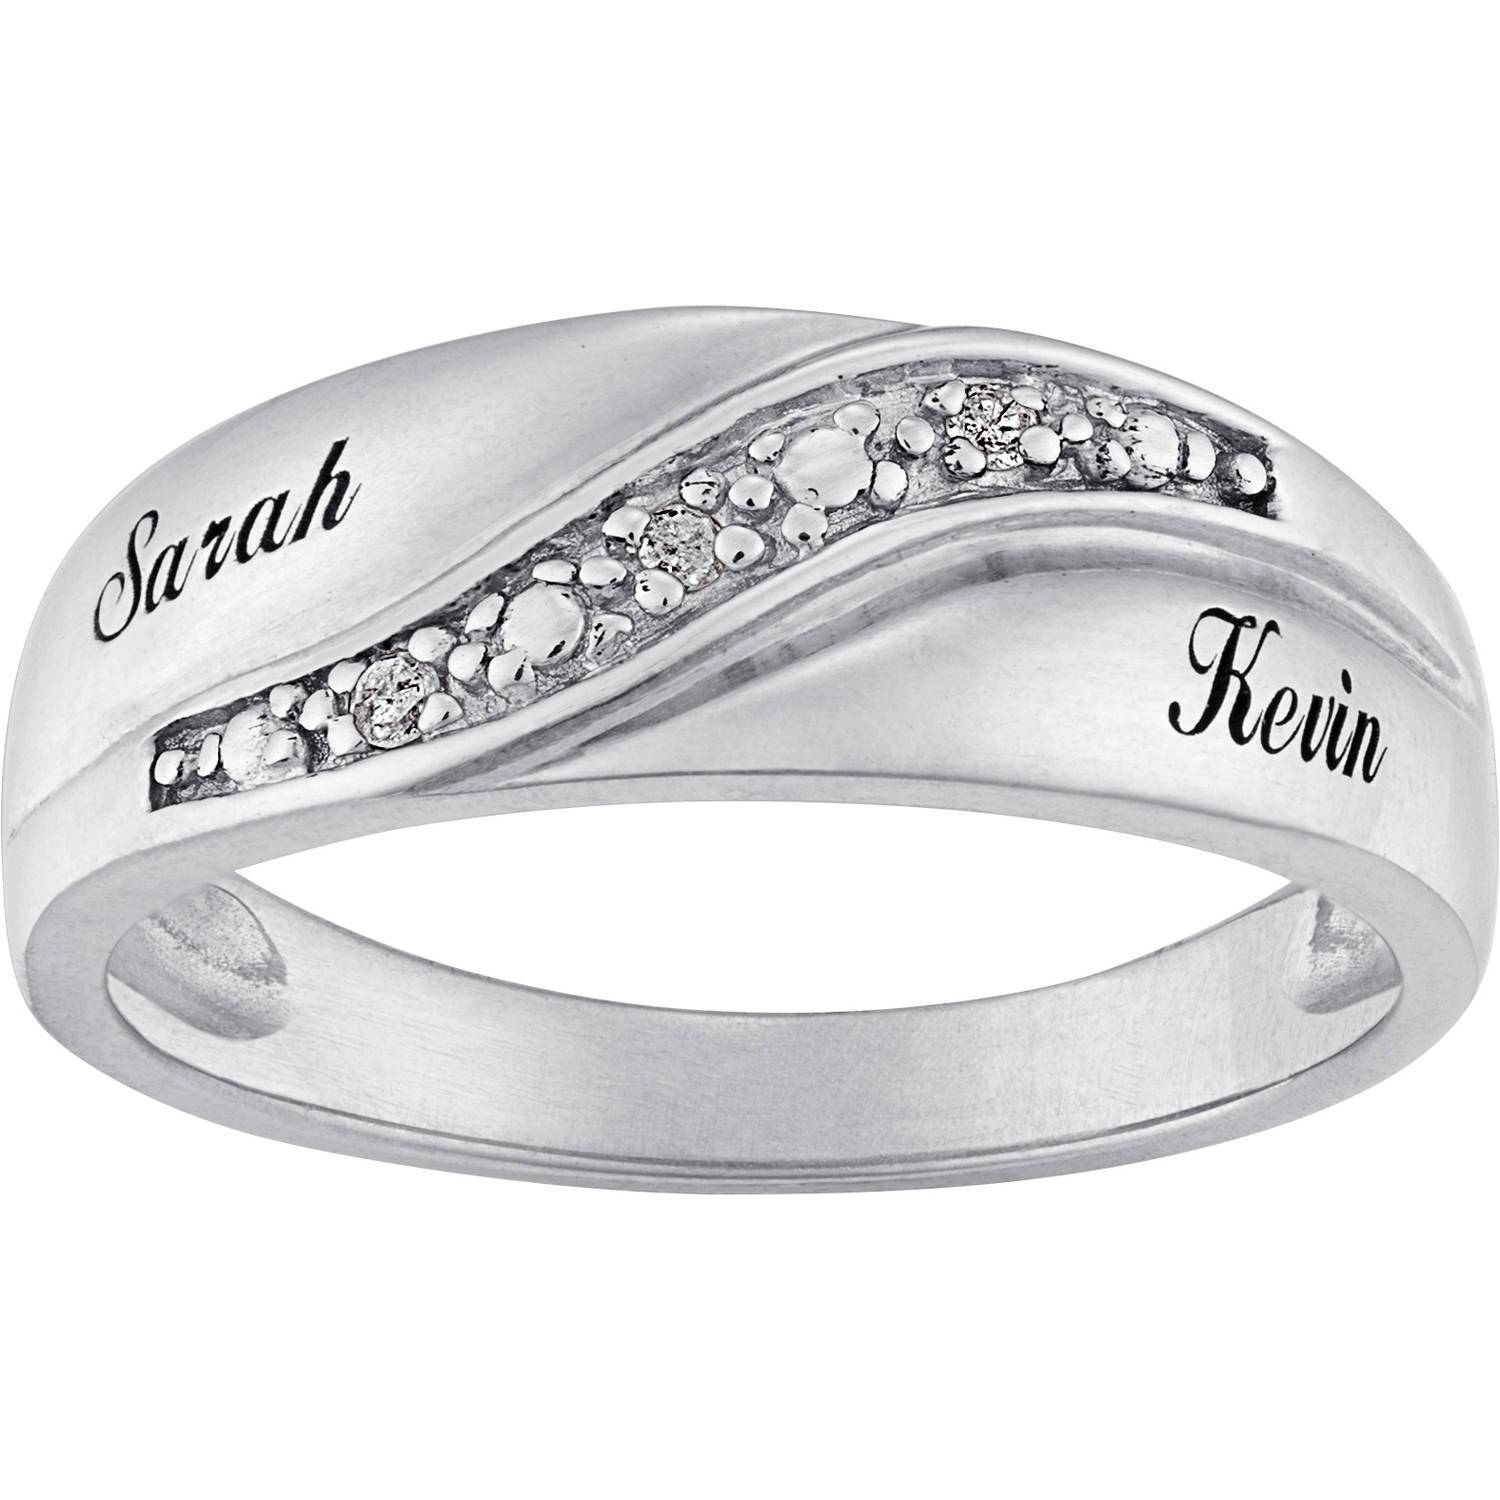 Wedding Rings : Wedding Band Engraving Quotes For Him Creative Throughout Engraving Mens Wedding Bands (View 15 of 15)